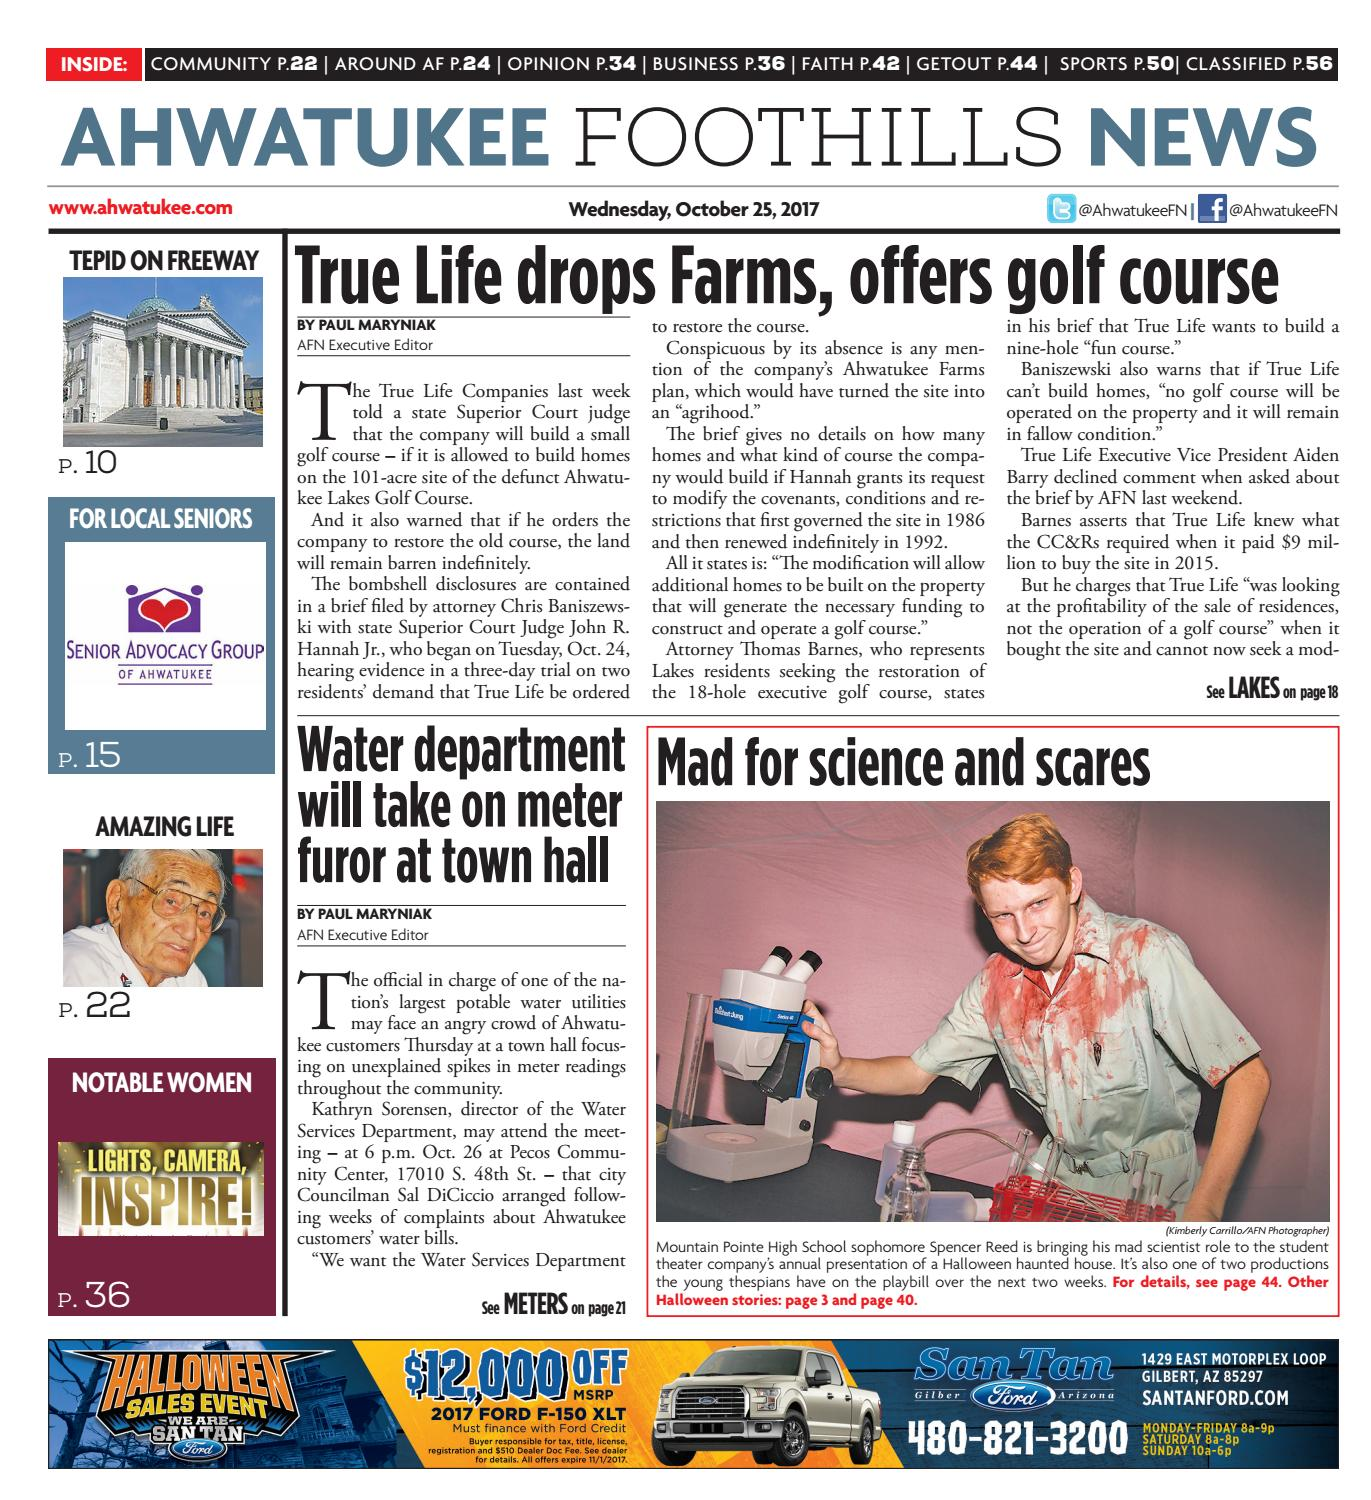 Ahwatukee foothills news october 25 2017 by times media group issuu fandeluxe Gallery